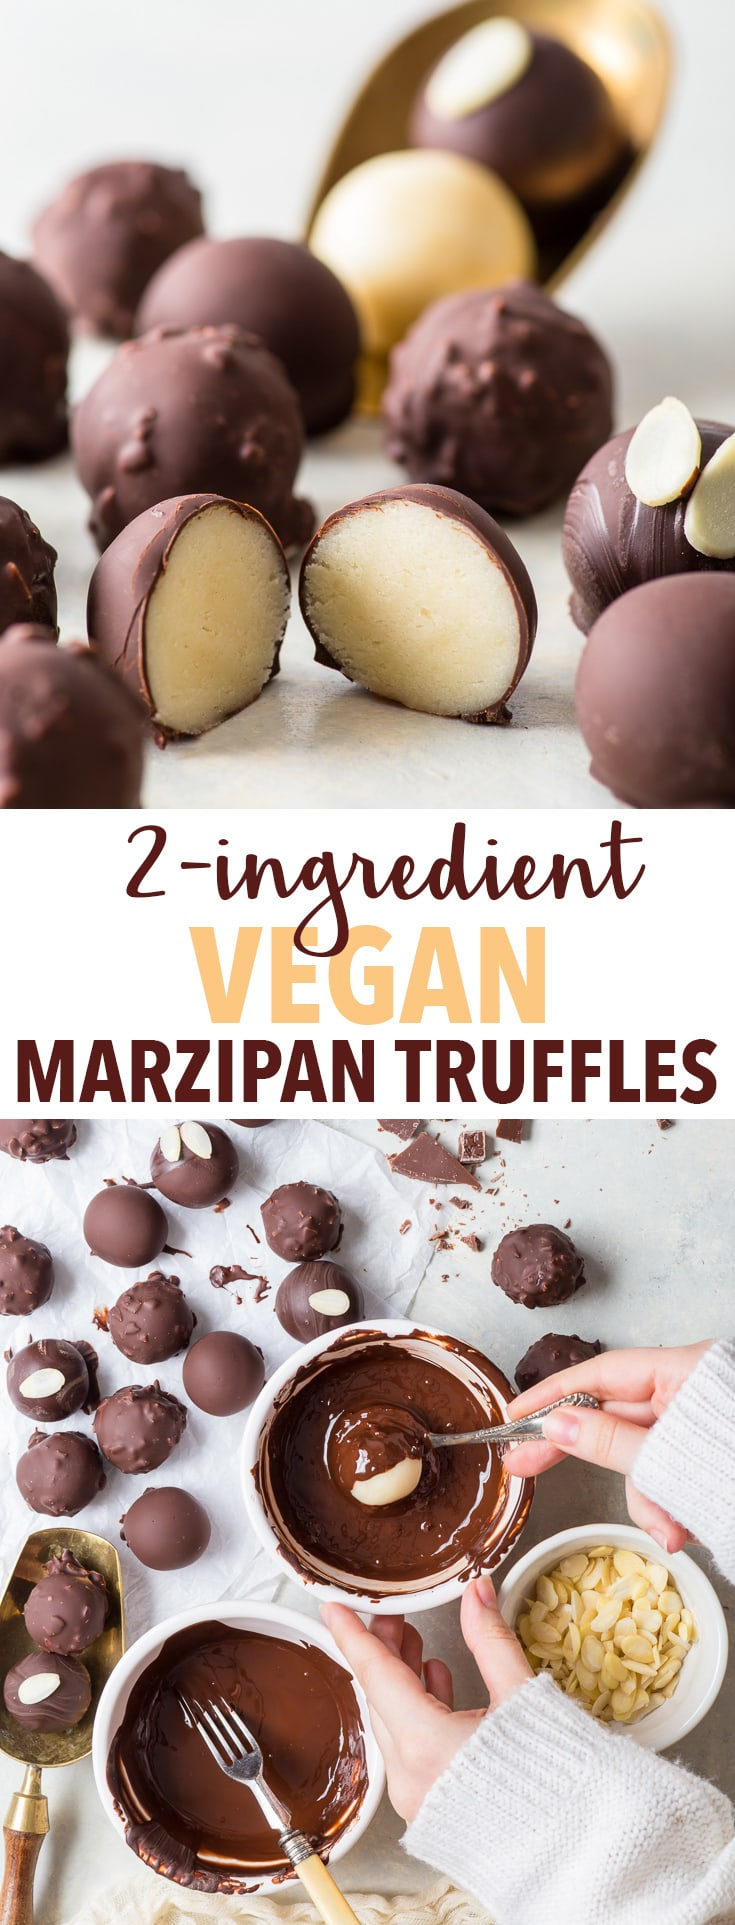 2-Ingredient Vegan Marzipan Truffles (Gluten Free, Dairy Free, Vegan) - 5 minutes is all it takes to make these delicious vegan marzipan truffles. With only two ingredients, they couldn't be easier to prepare – but don't let the simplicity fool you. These bite-sized sweet treats pack a helluva flavour punch. Easy dessert recipes. Candy recipes. Quick dessert ideas. Vegan dessert recipes. Chocolate recipes. Chocolate truffle recipes. DIY gift ideas. #chocolate #marzipan